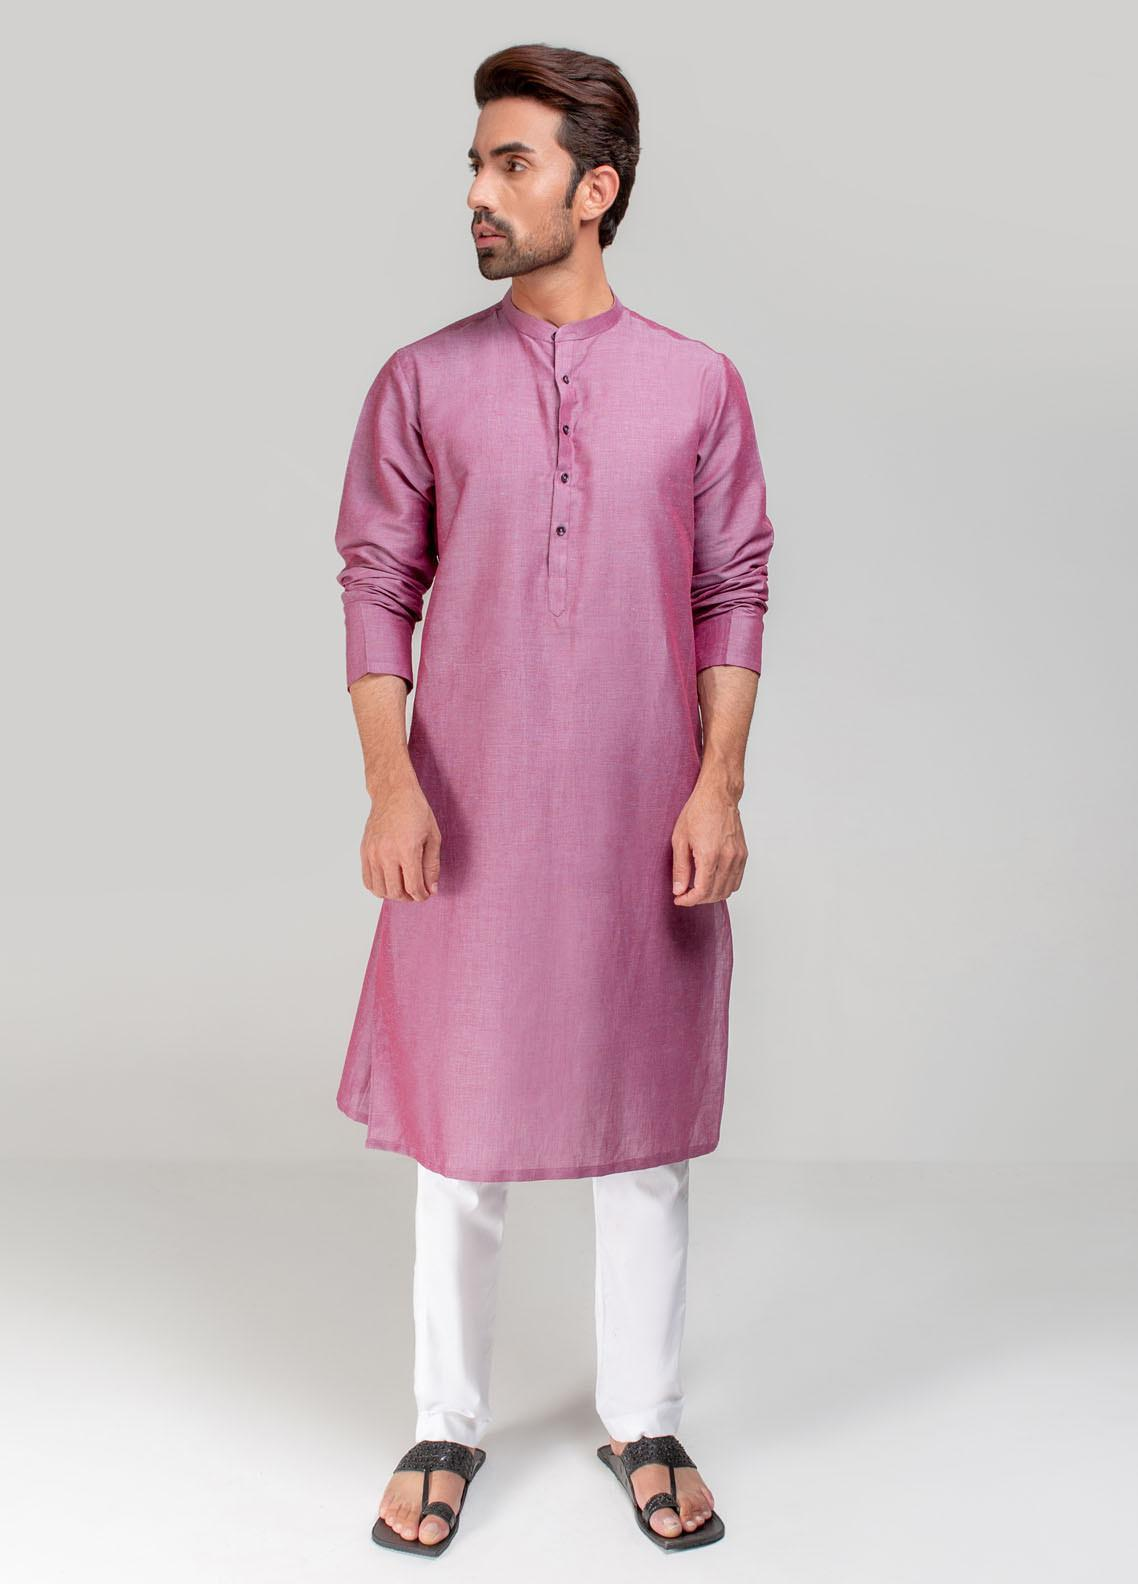 Project Linen Casual Kurta for Men - Rose Wood PLSK-007